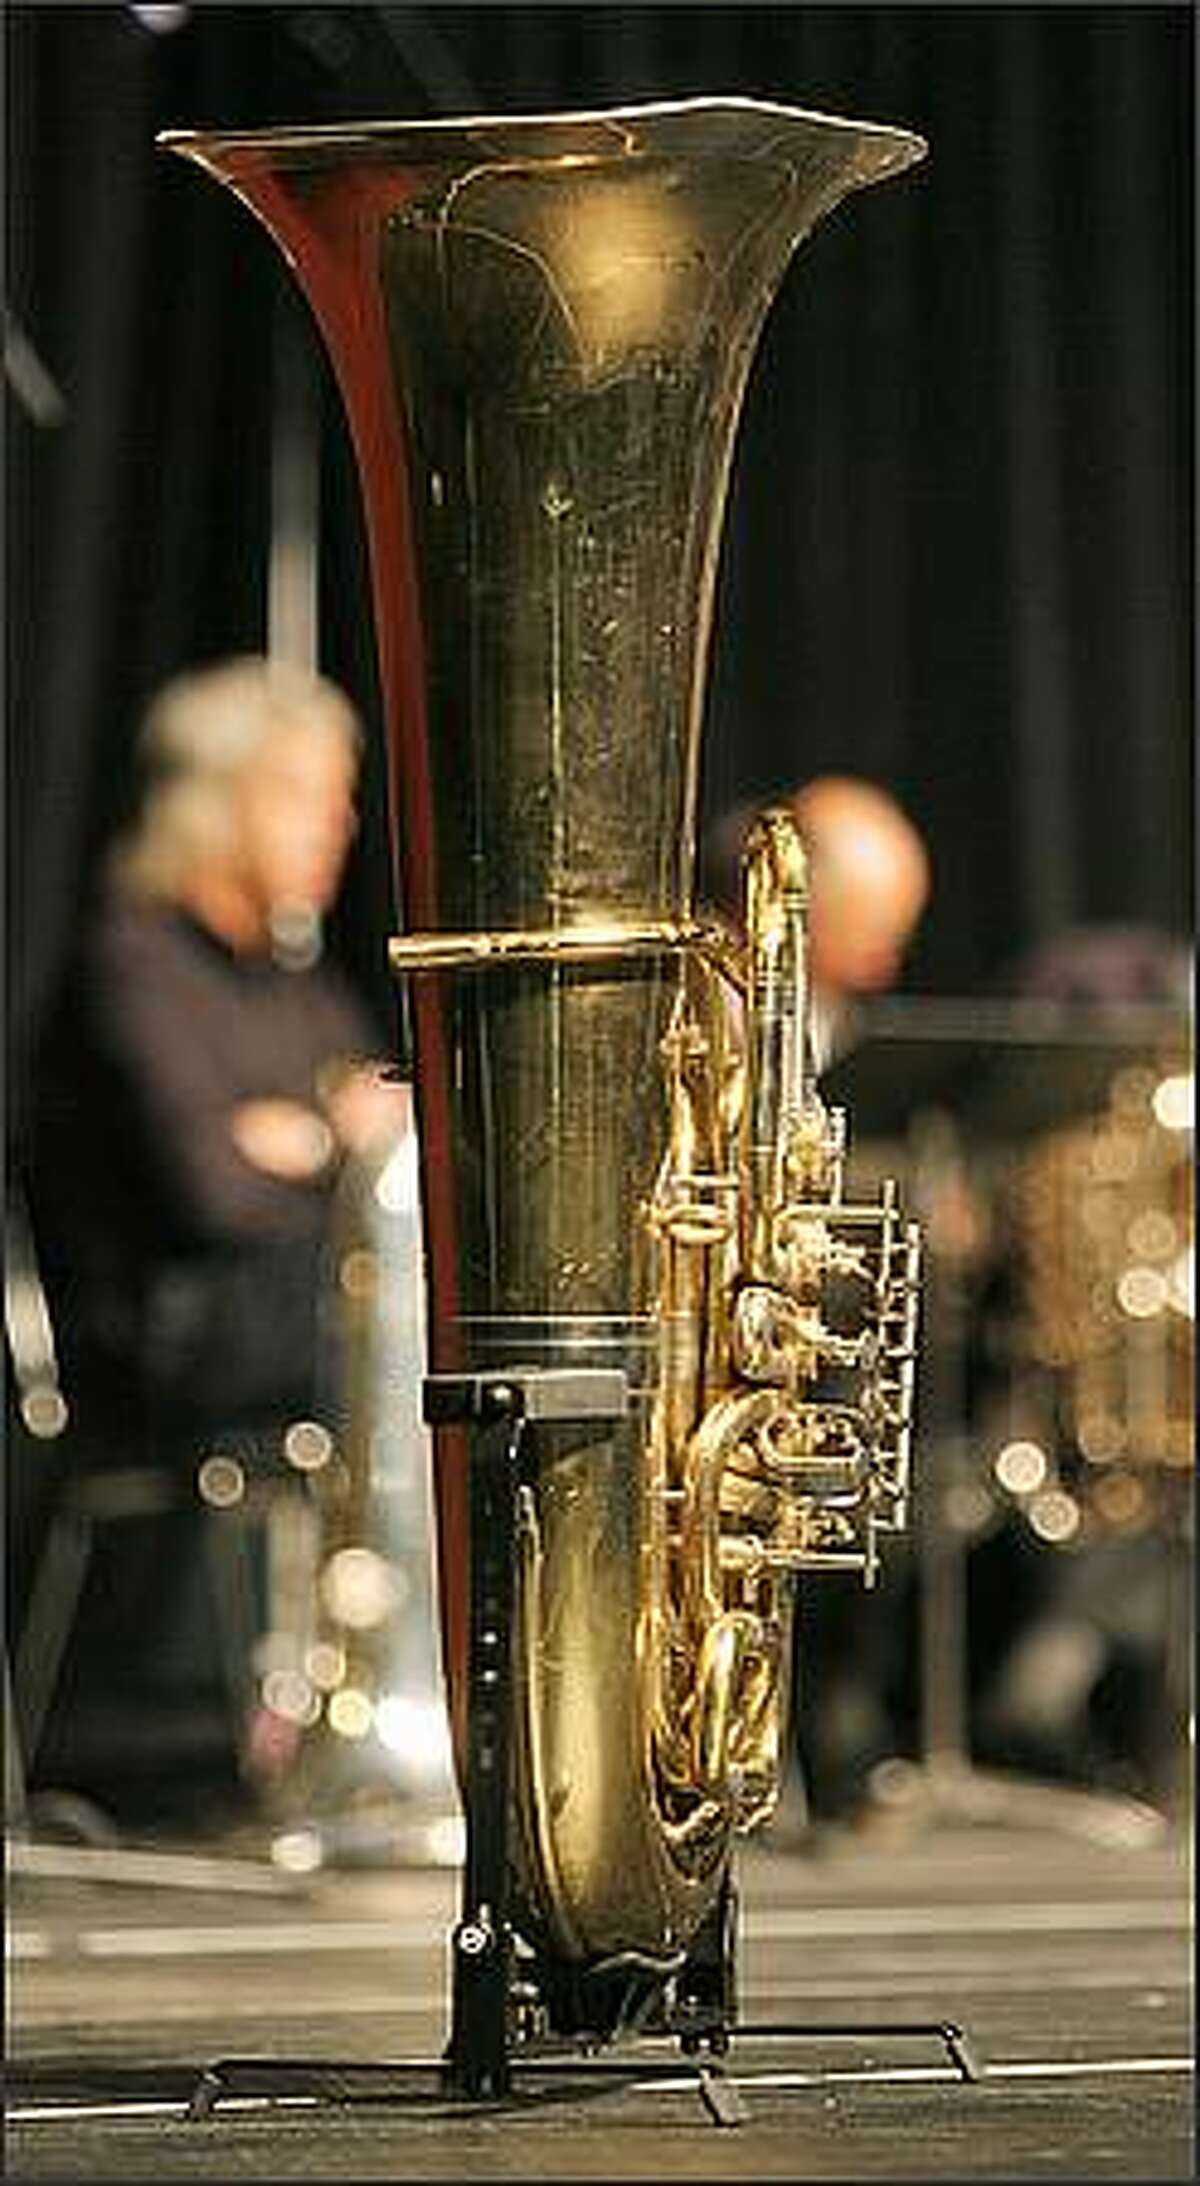 Slain Tuba Man, Edward McMichael's tuba stands on display at a memorial service held at the Qwest Field Events Center in Seattle.